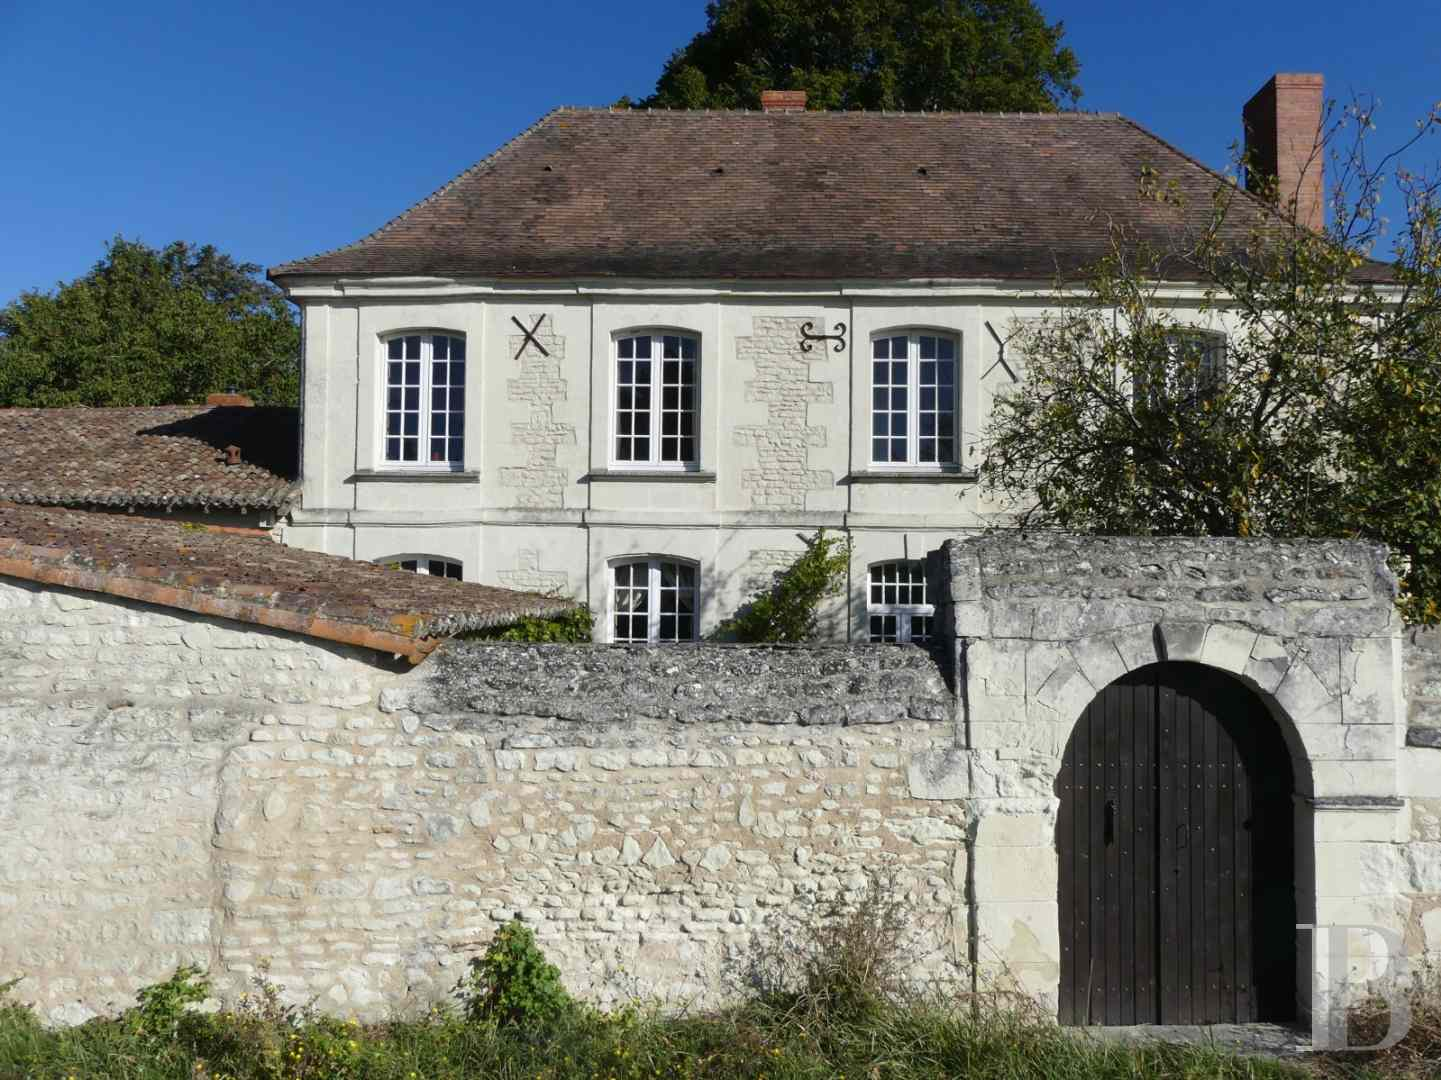 character properties France poitou charentes character houses - 1 zoom